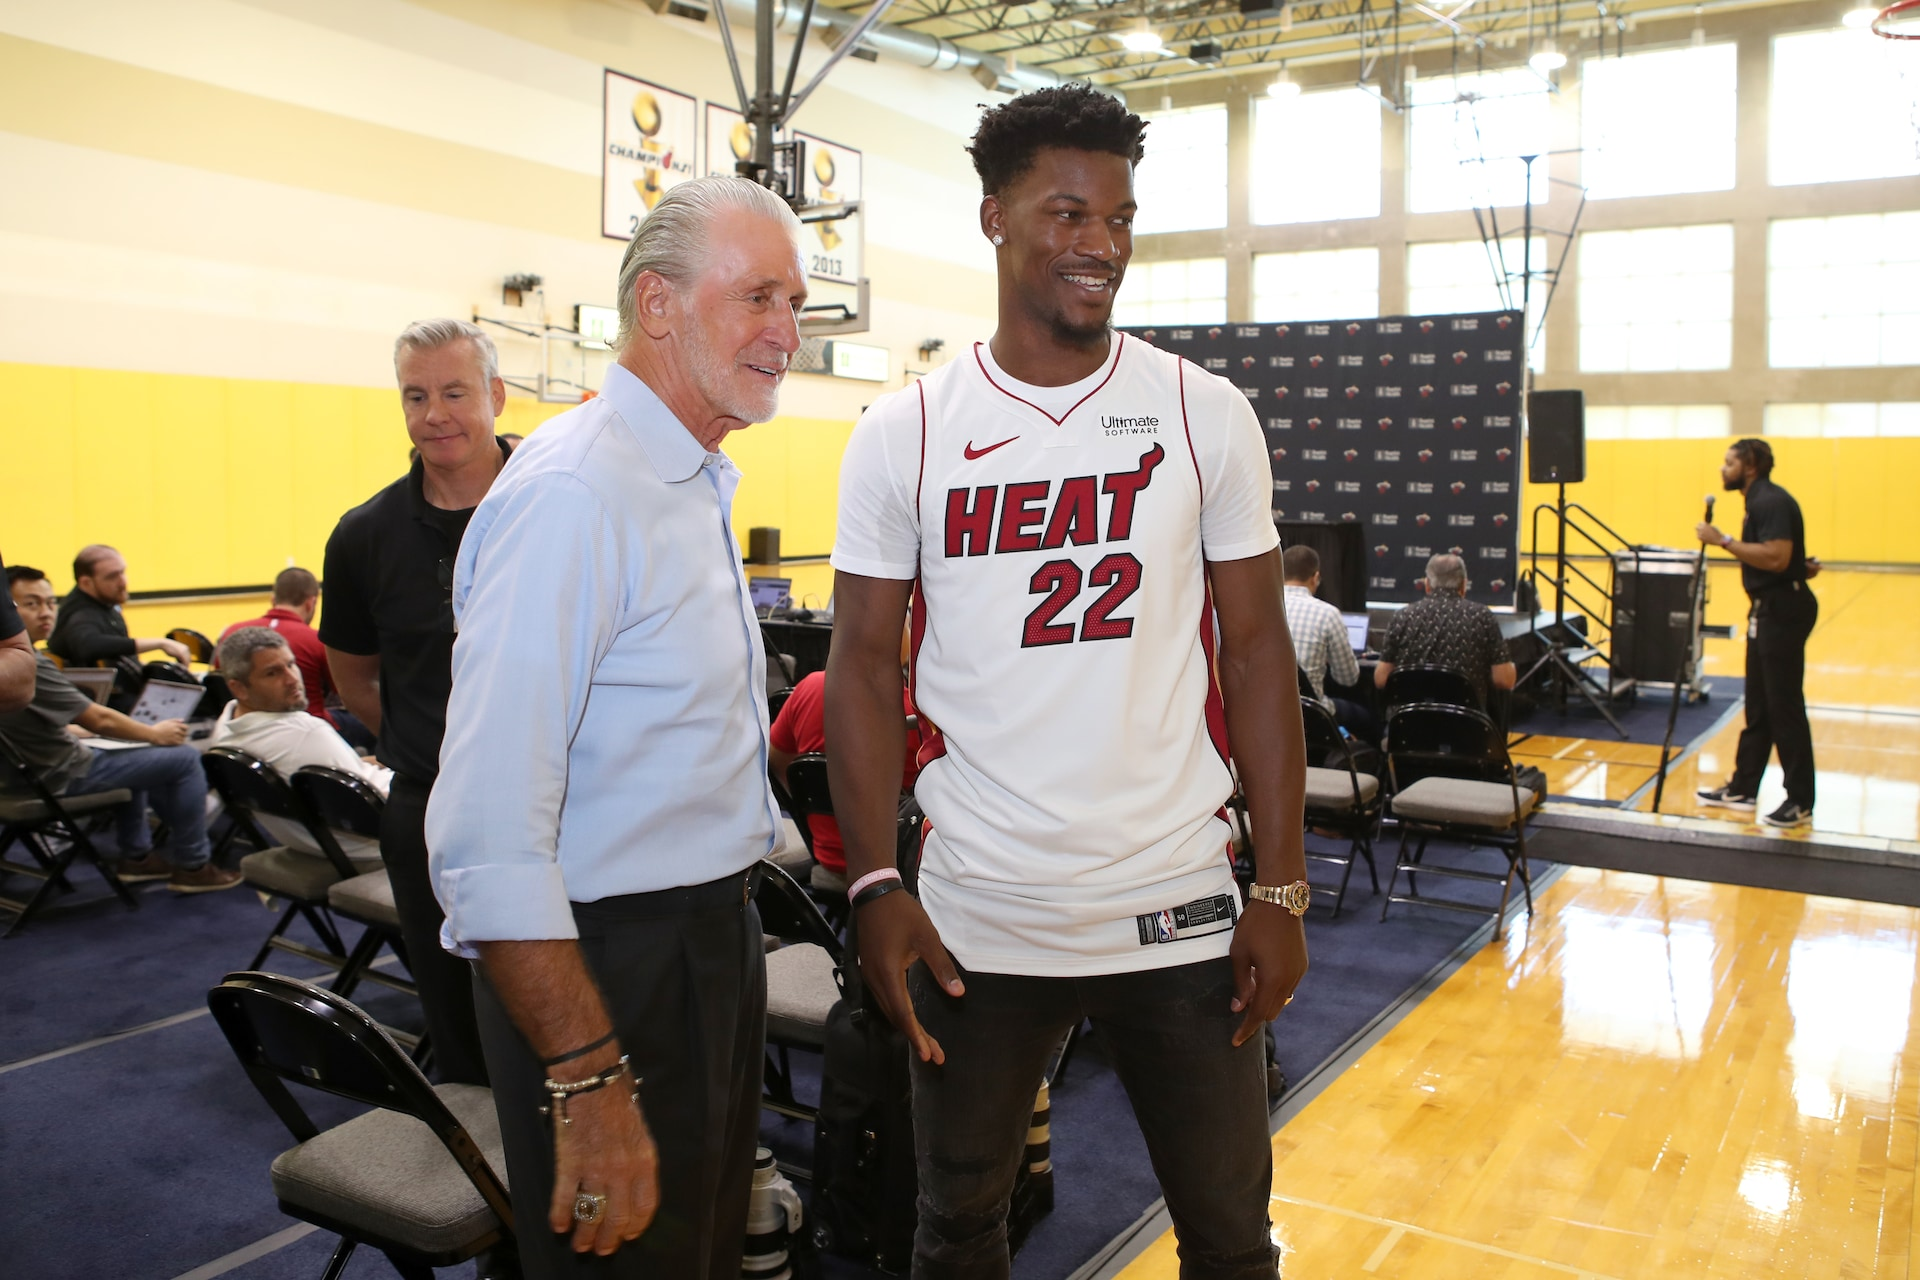 Pat Riley discusses Heat future, plans for keeping core intact